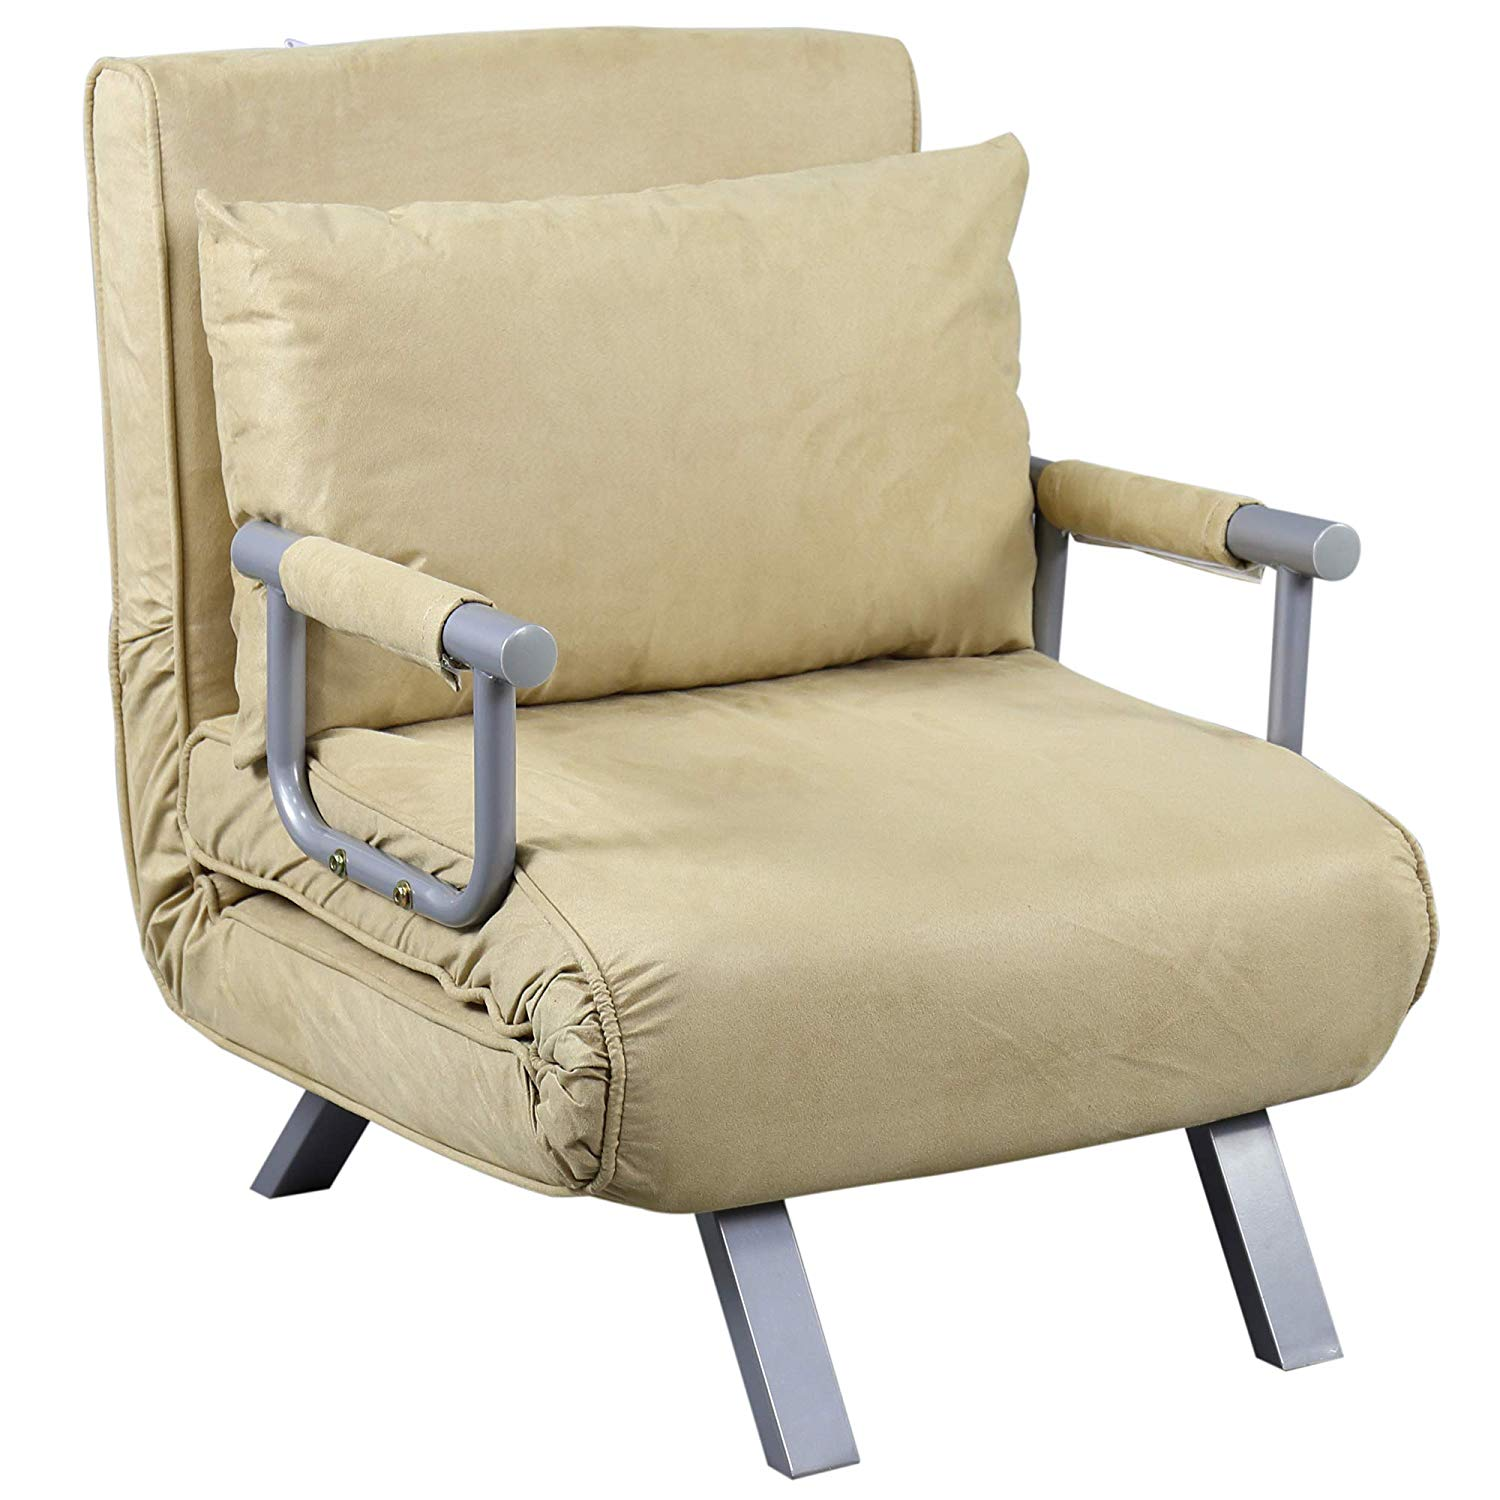 Cheap Single Bed Chair Sleeper Find Single Bed Chair